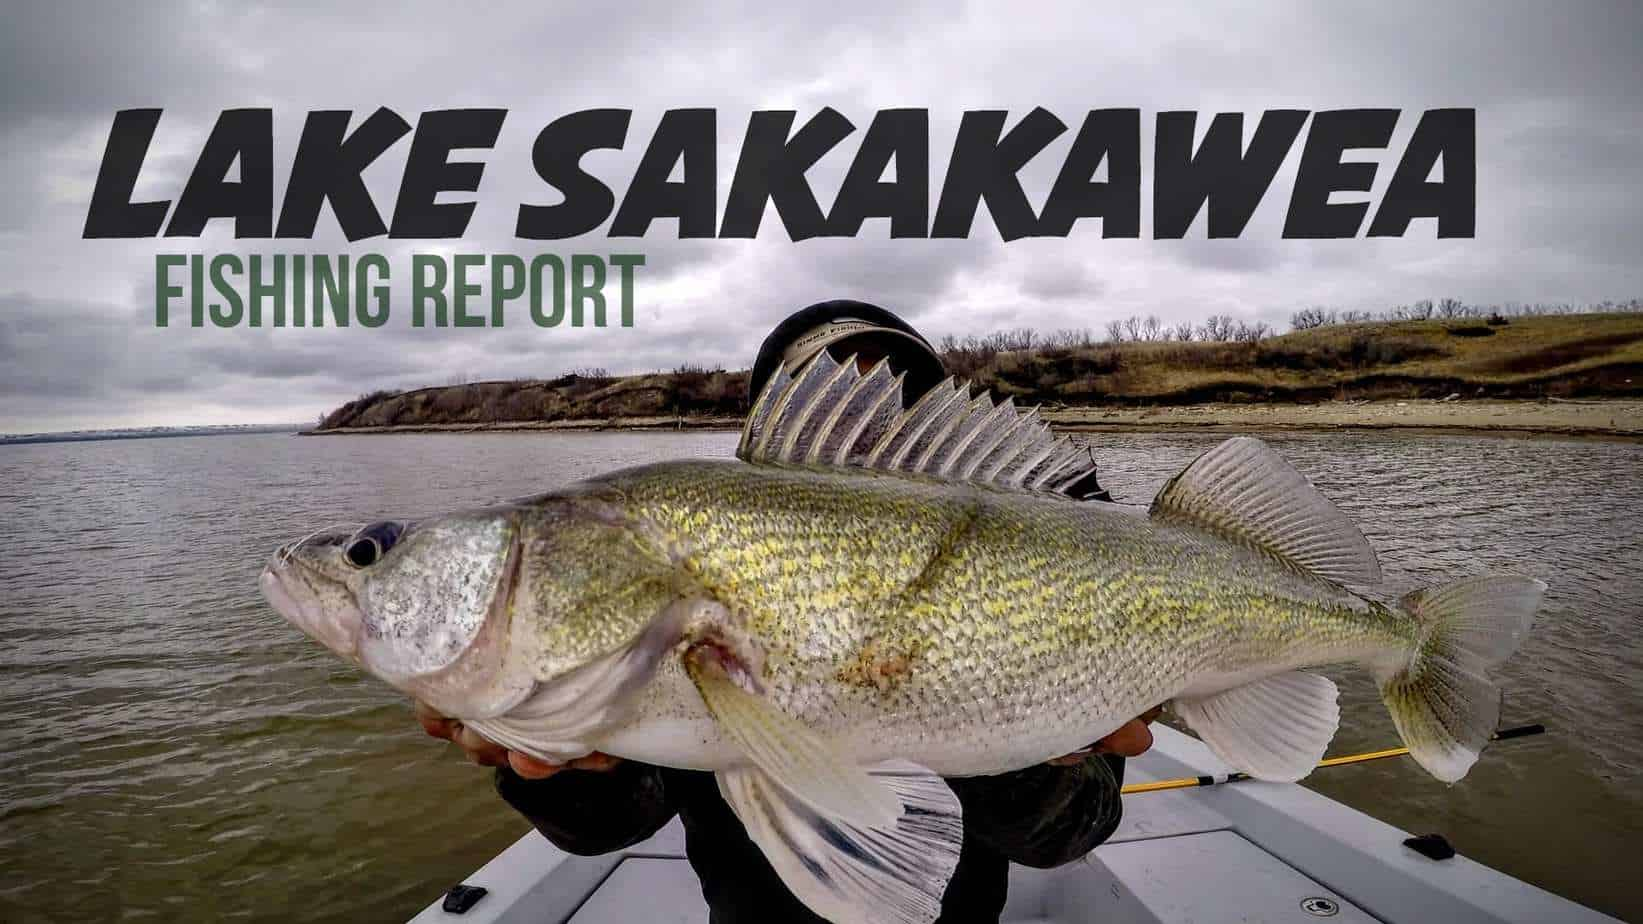 Lake Sakakawea (ND) Fishing Report – Josh Johnson